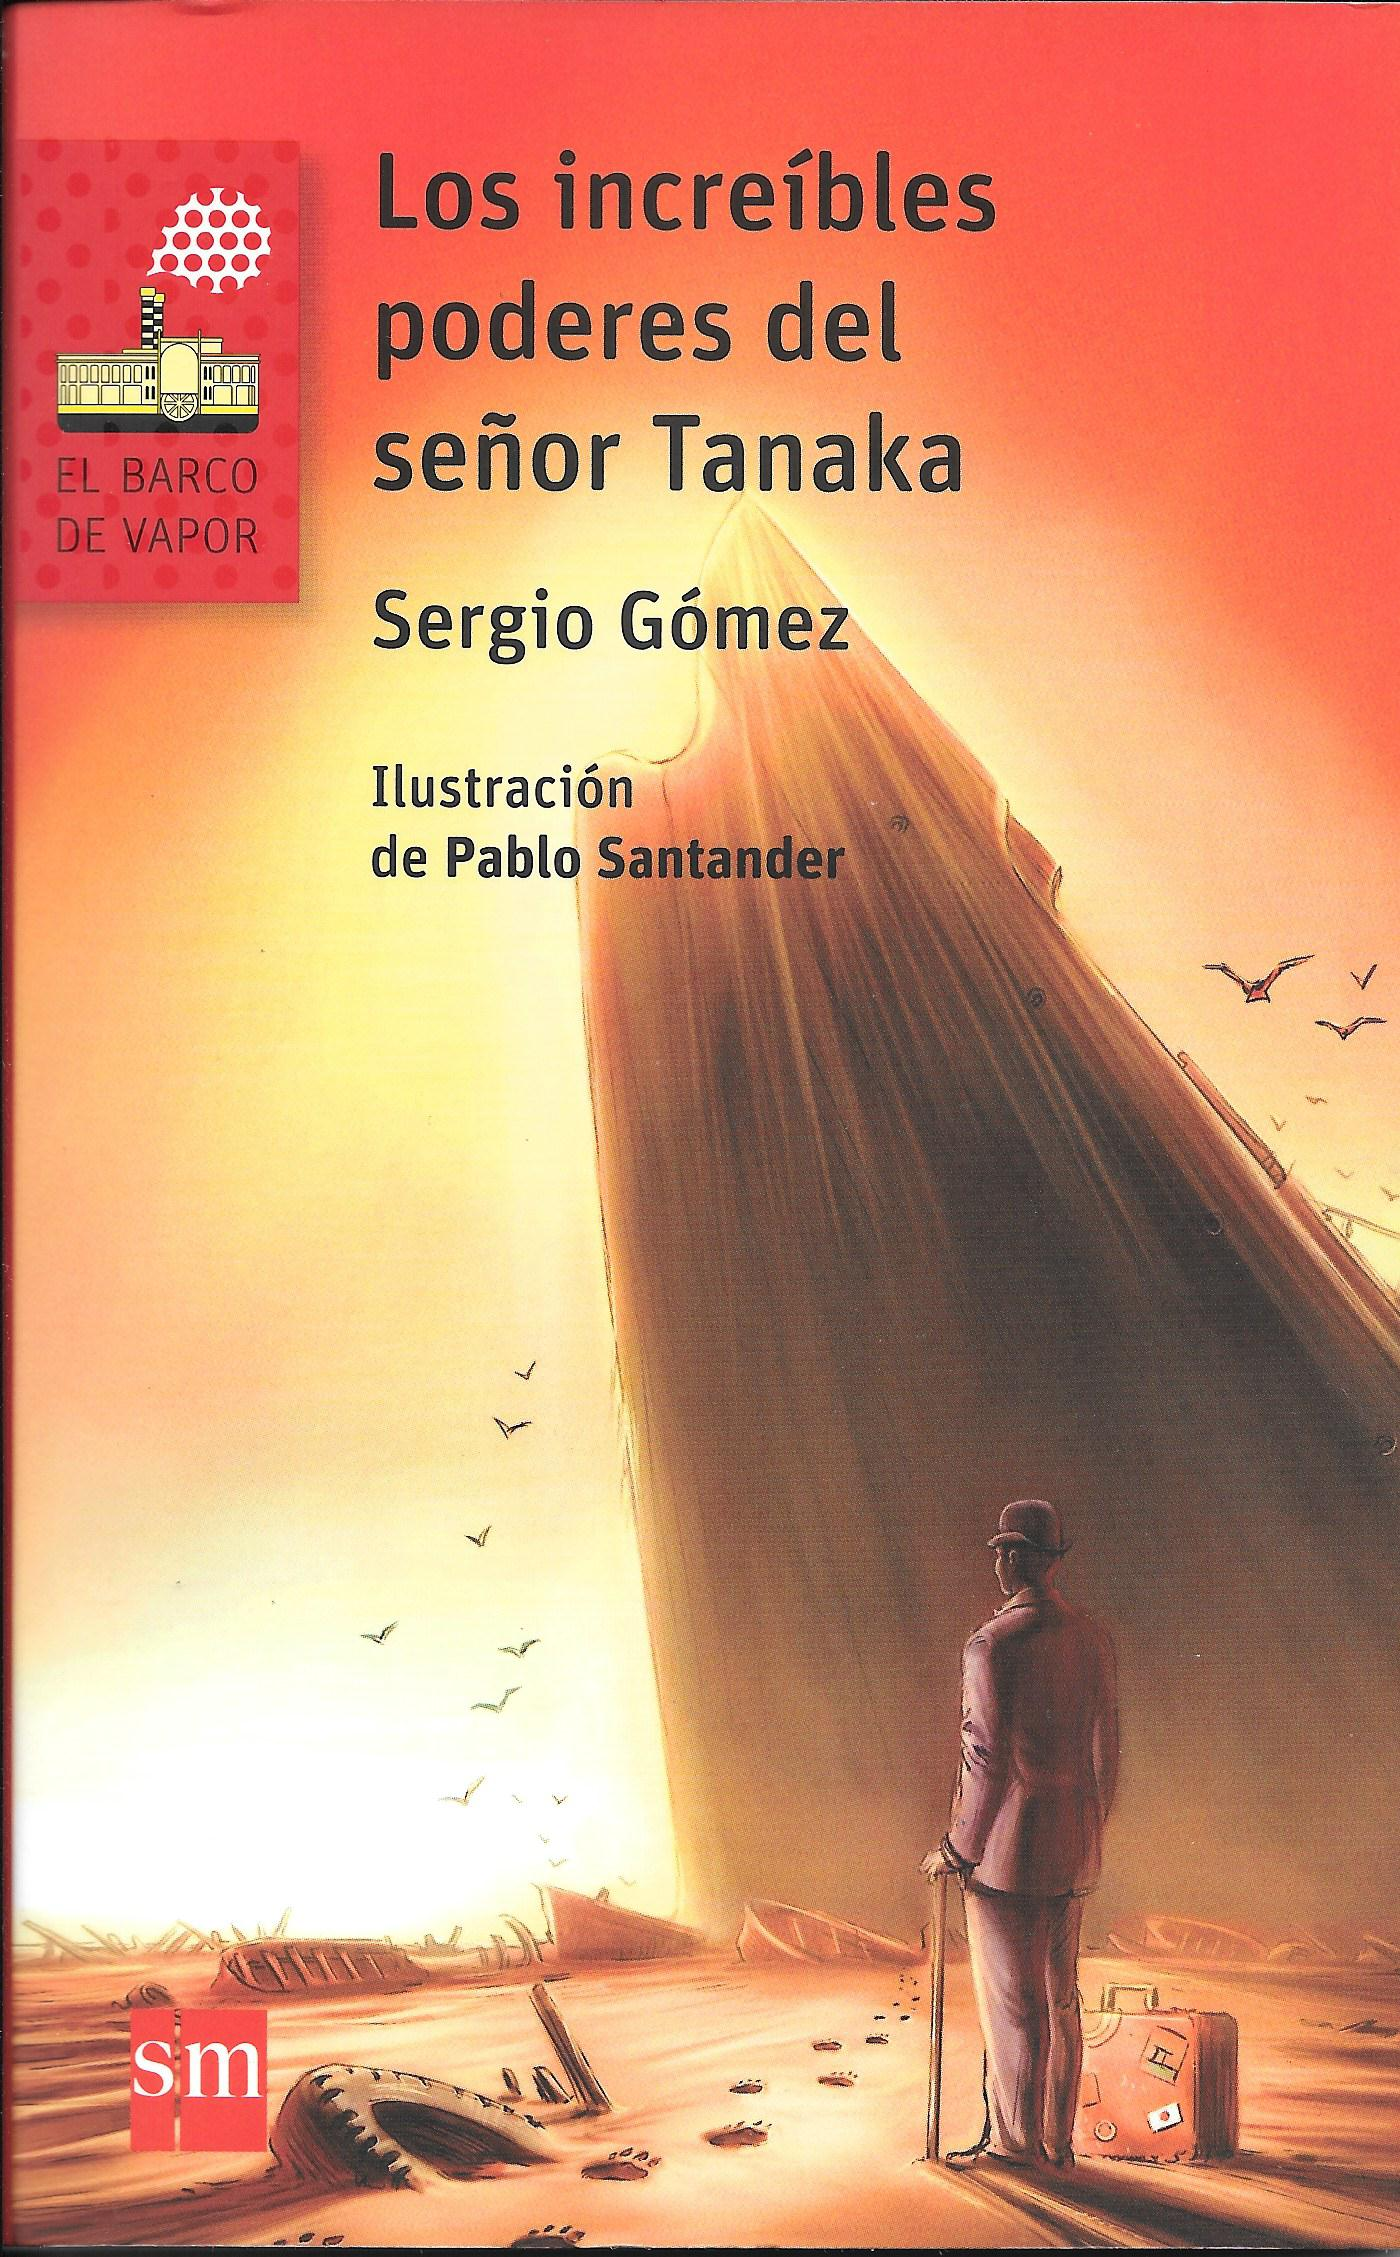 Los increíbles poderes del señor Tanaka  (The incredible Powers of Mr. Tanaka)